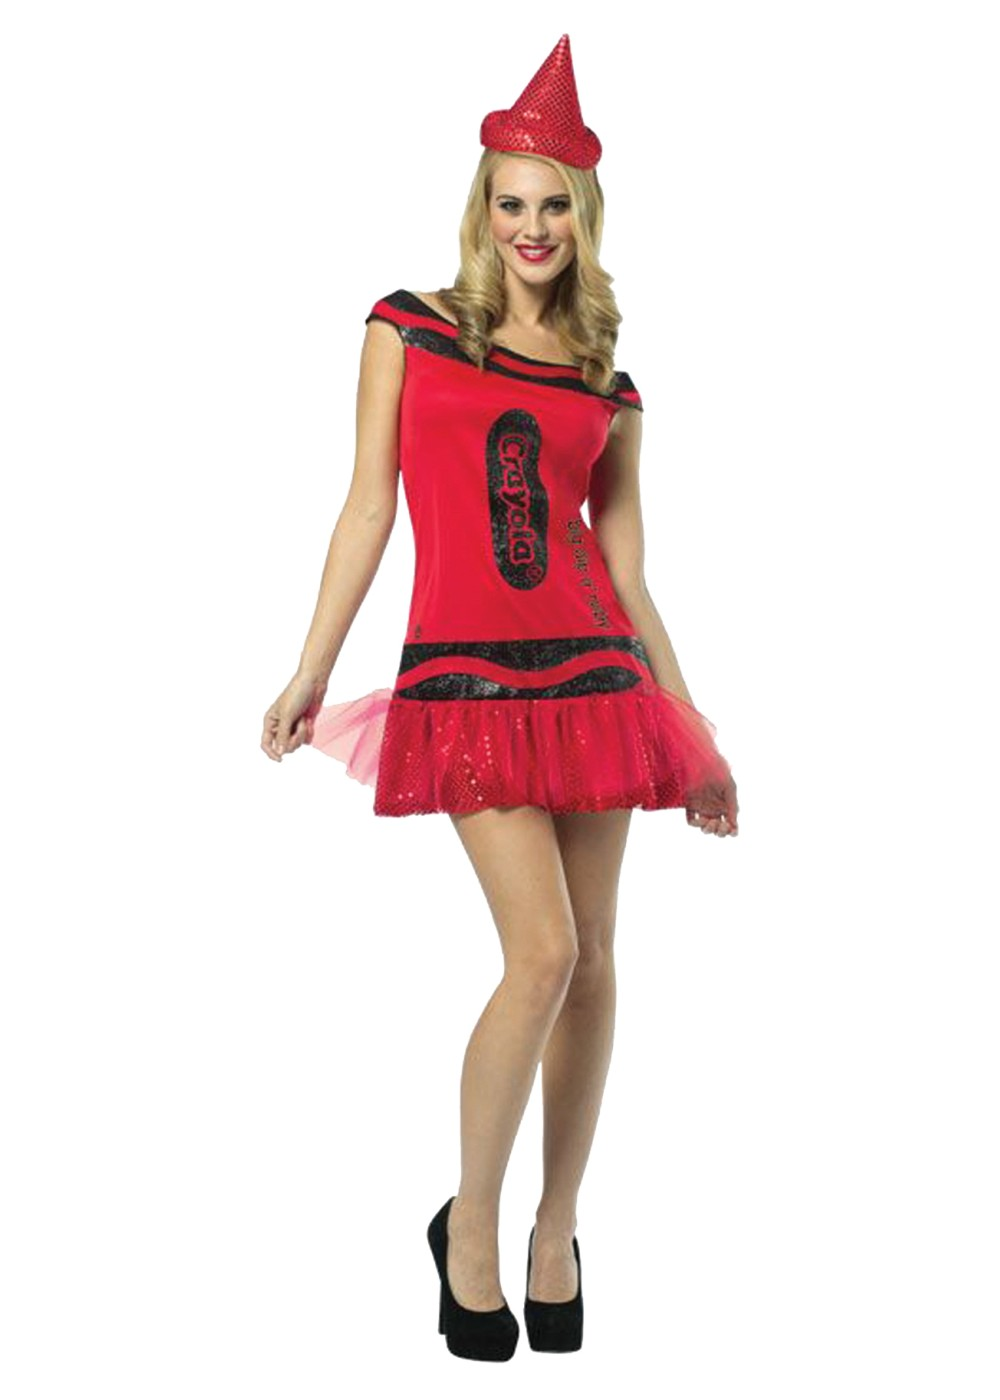 Red Crayola Crayon Costume - Cosplay Costumes - New for 2018